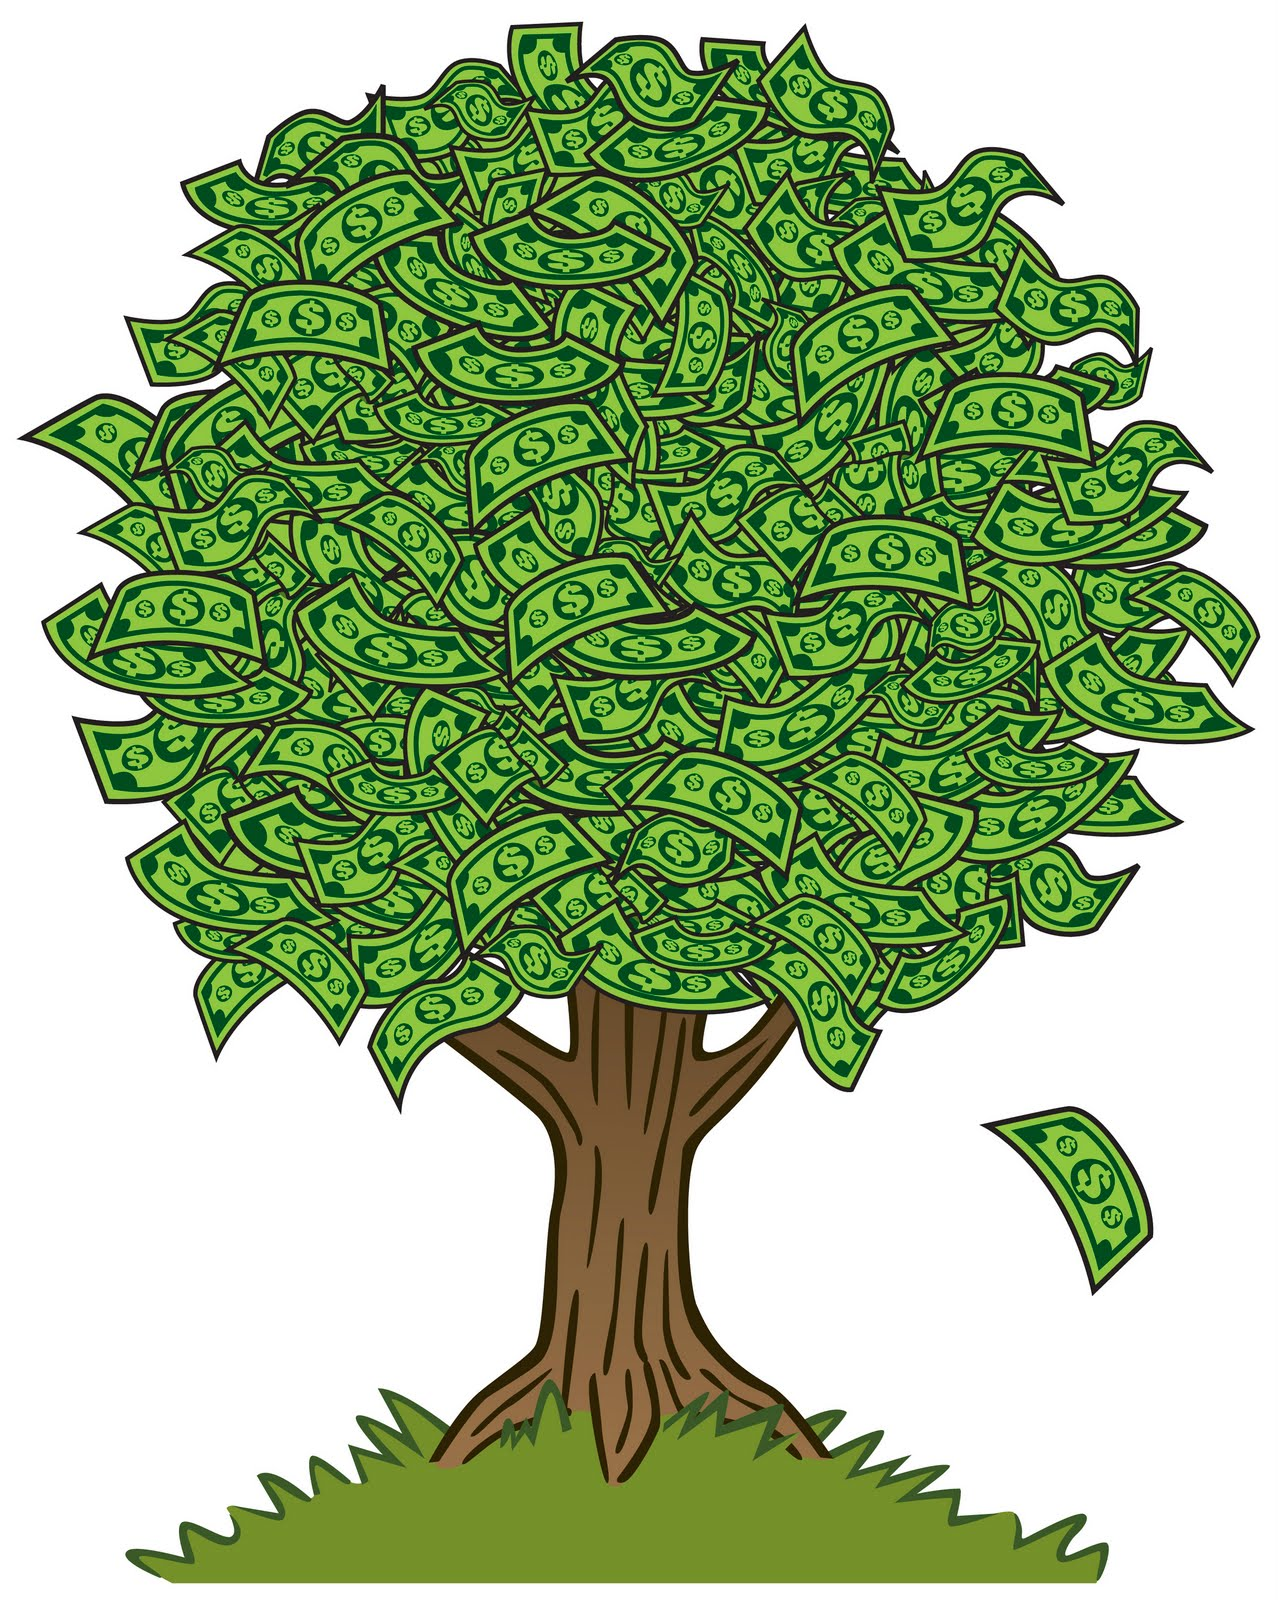 August tree clipart svg black and white library IPrintfromHome.com: Money Tree #181509 - Clipartimage.com svg black and white library